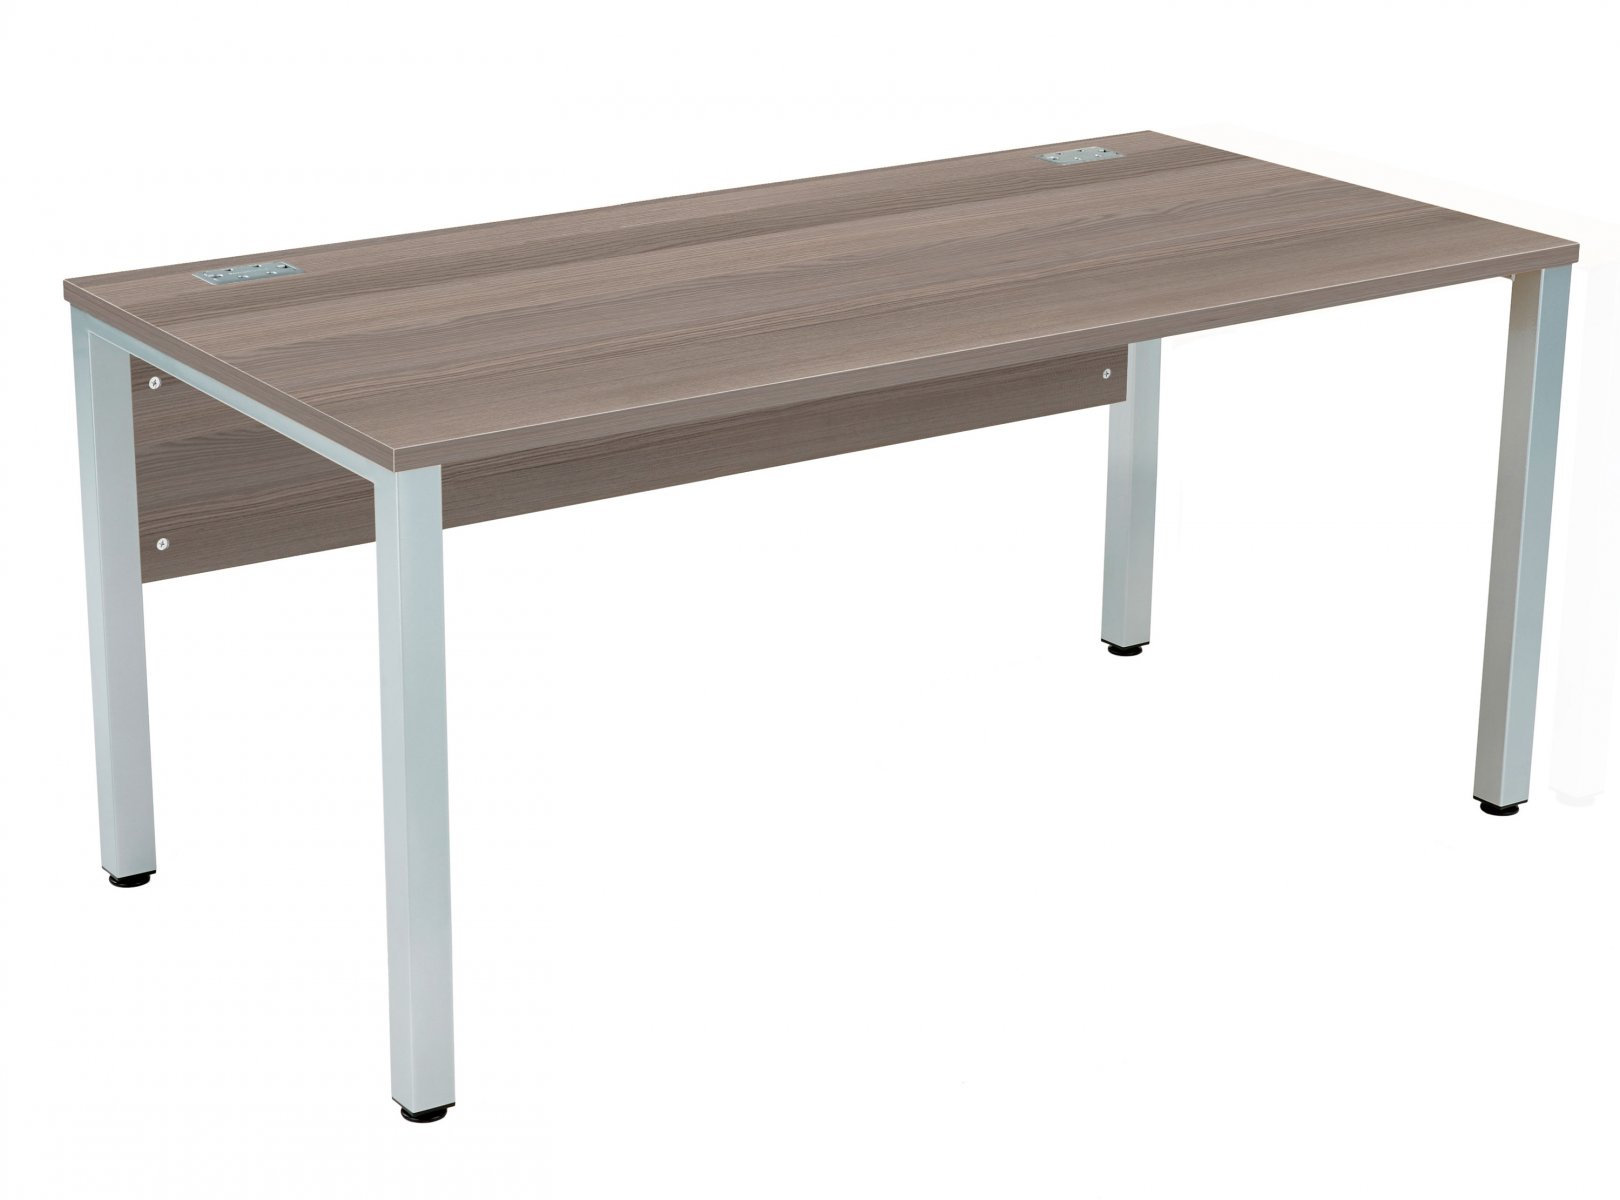 Fraction 3 Rectangular 160 Desk - Grey Oak with Silver Frame